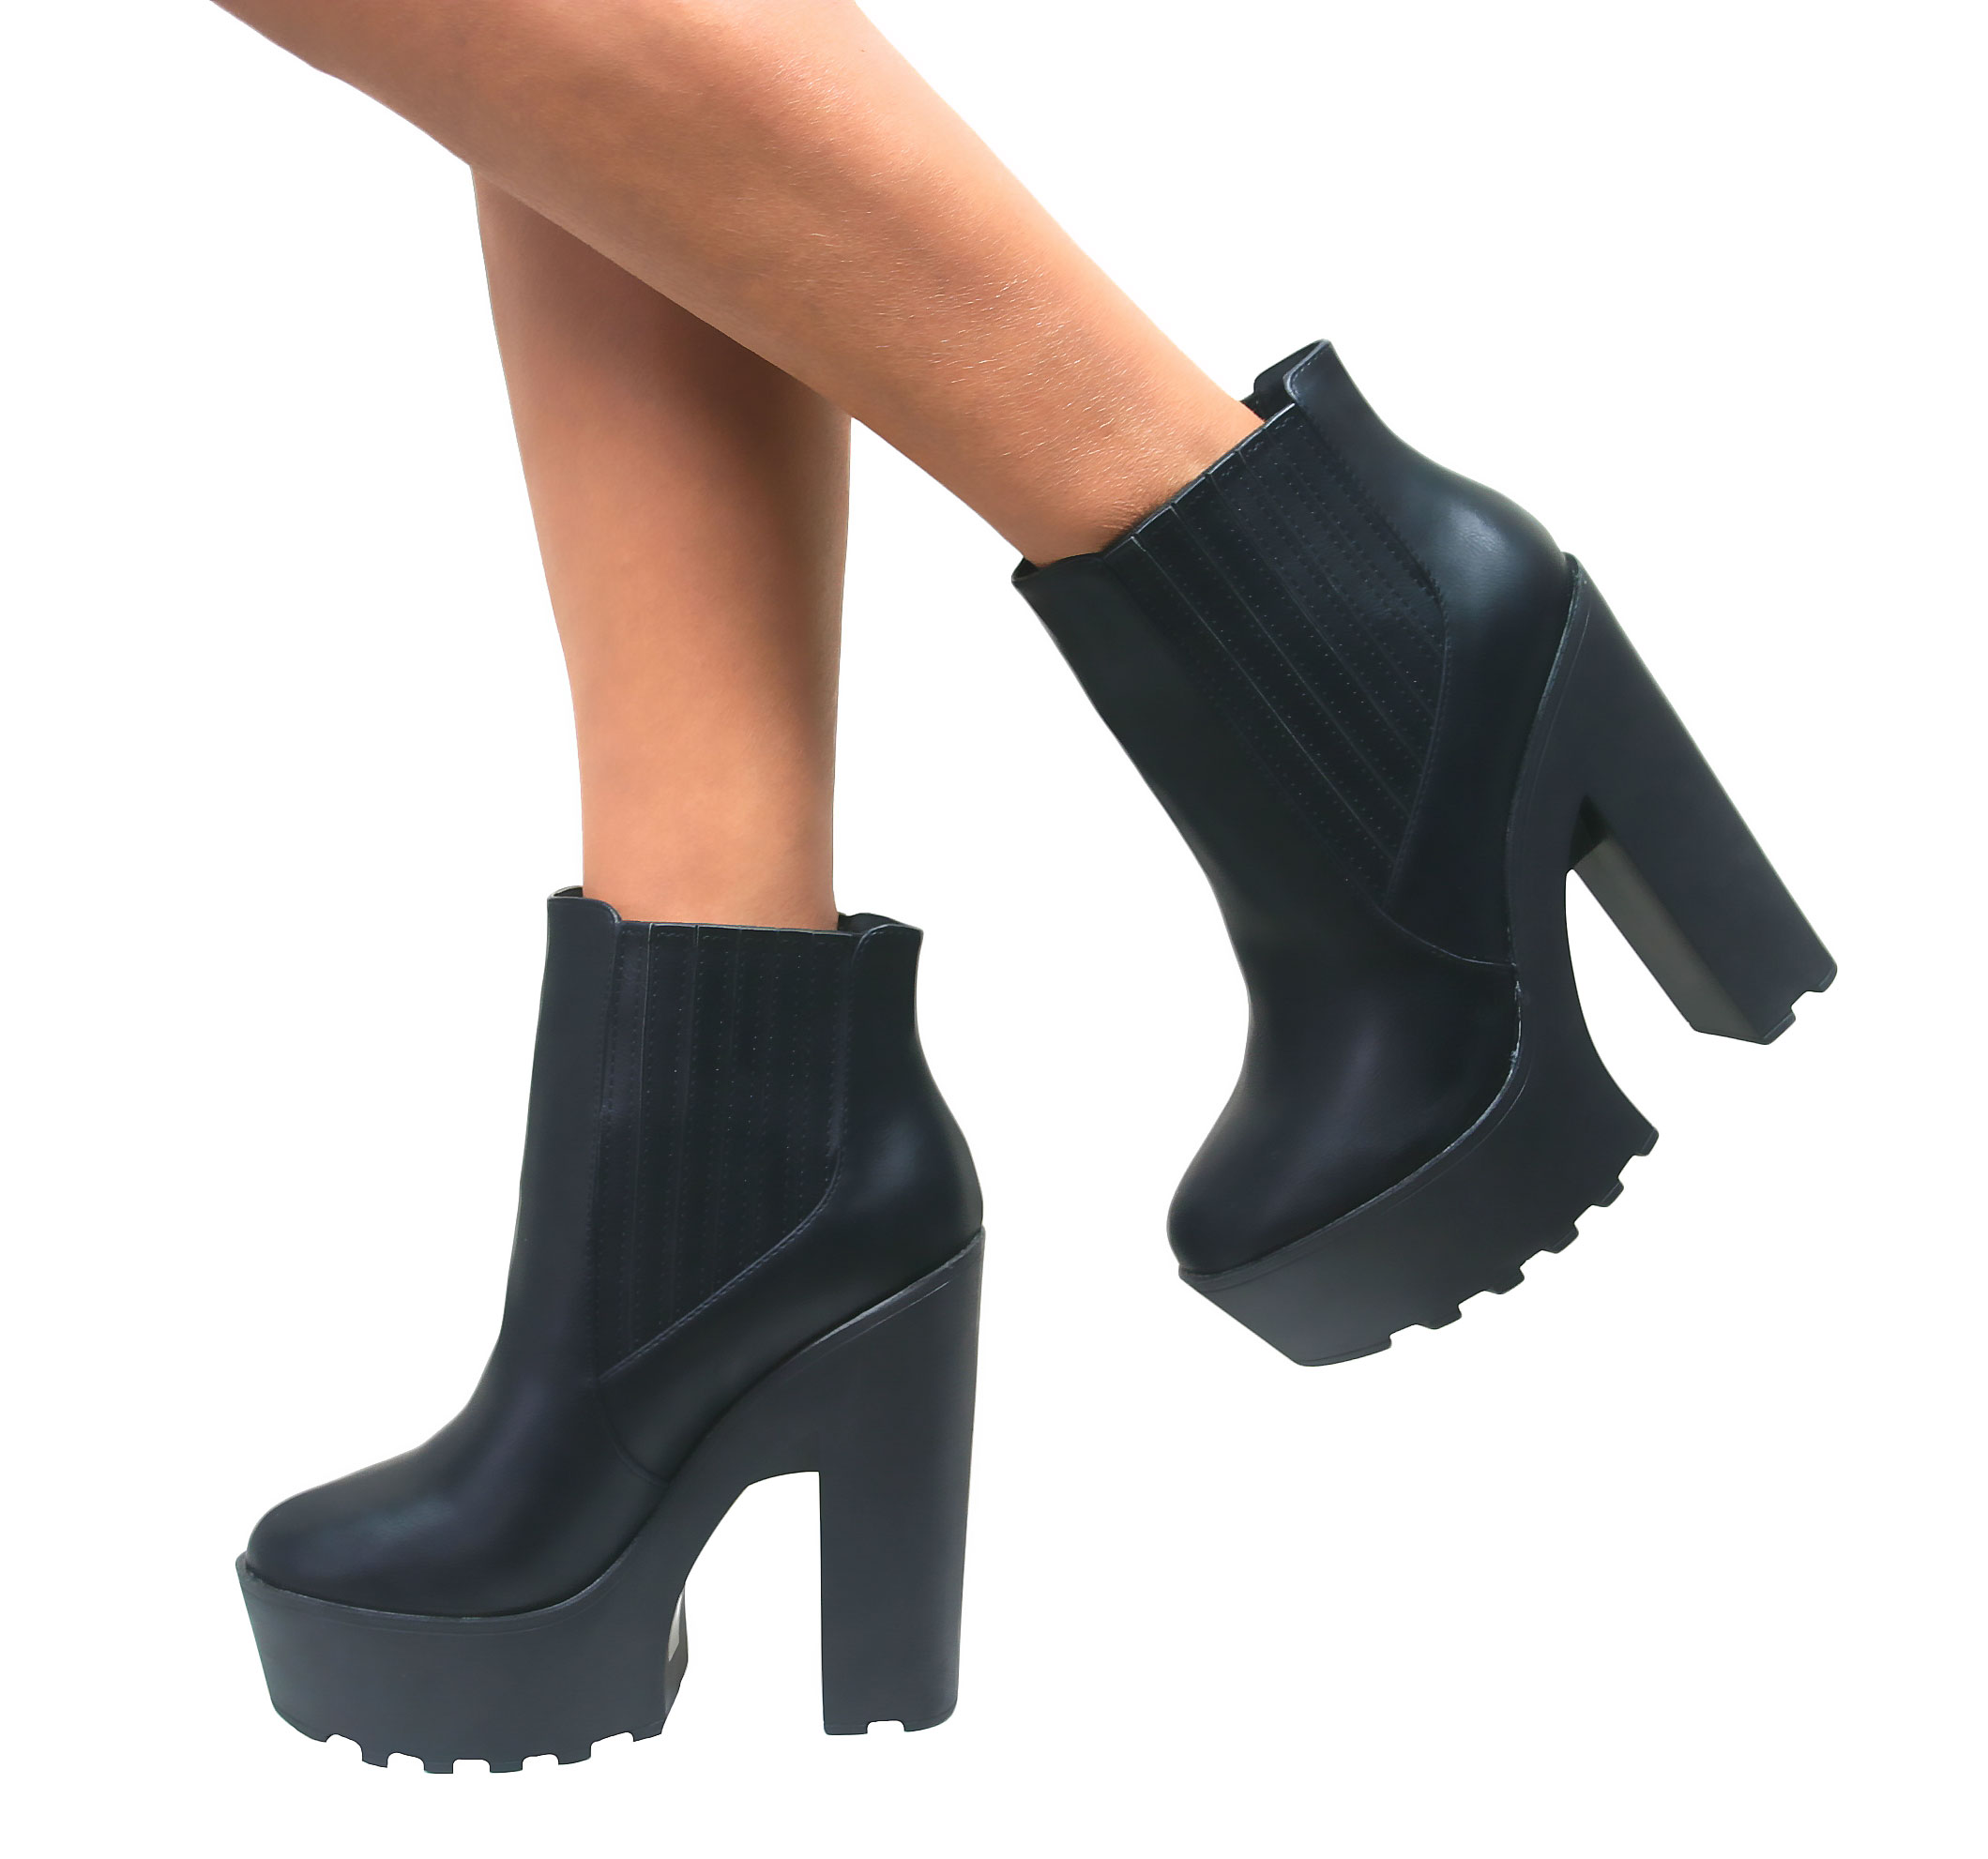 WOMENS LADIES CHUNKY PLATFORM ANKLE BOOTS CLEATED SOLE HIGH HEEL ...